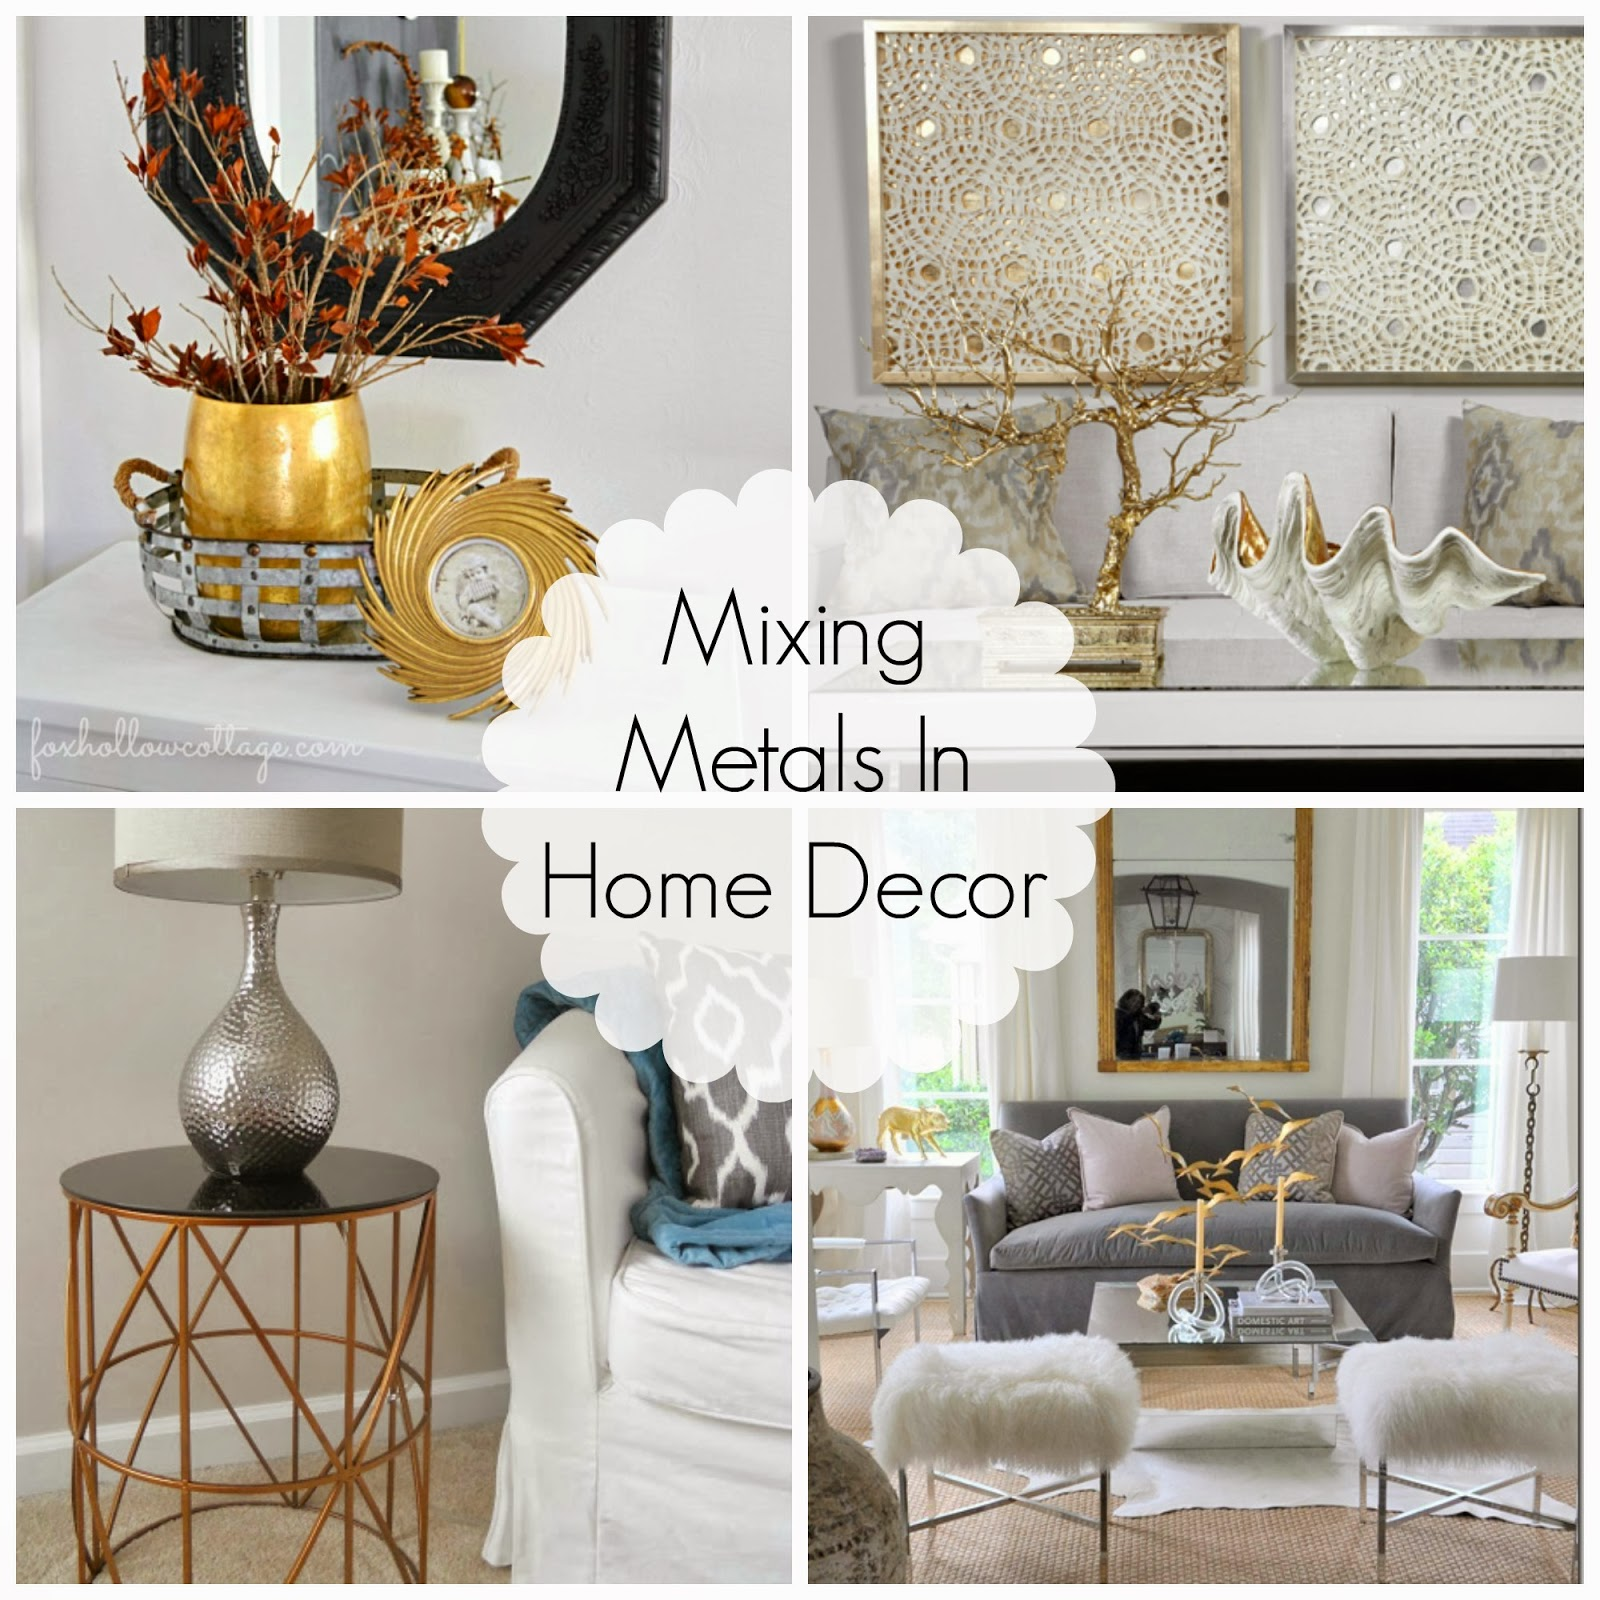 Decorating cents mixing metals in home decor for Home decorating materials